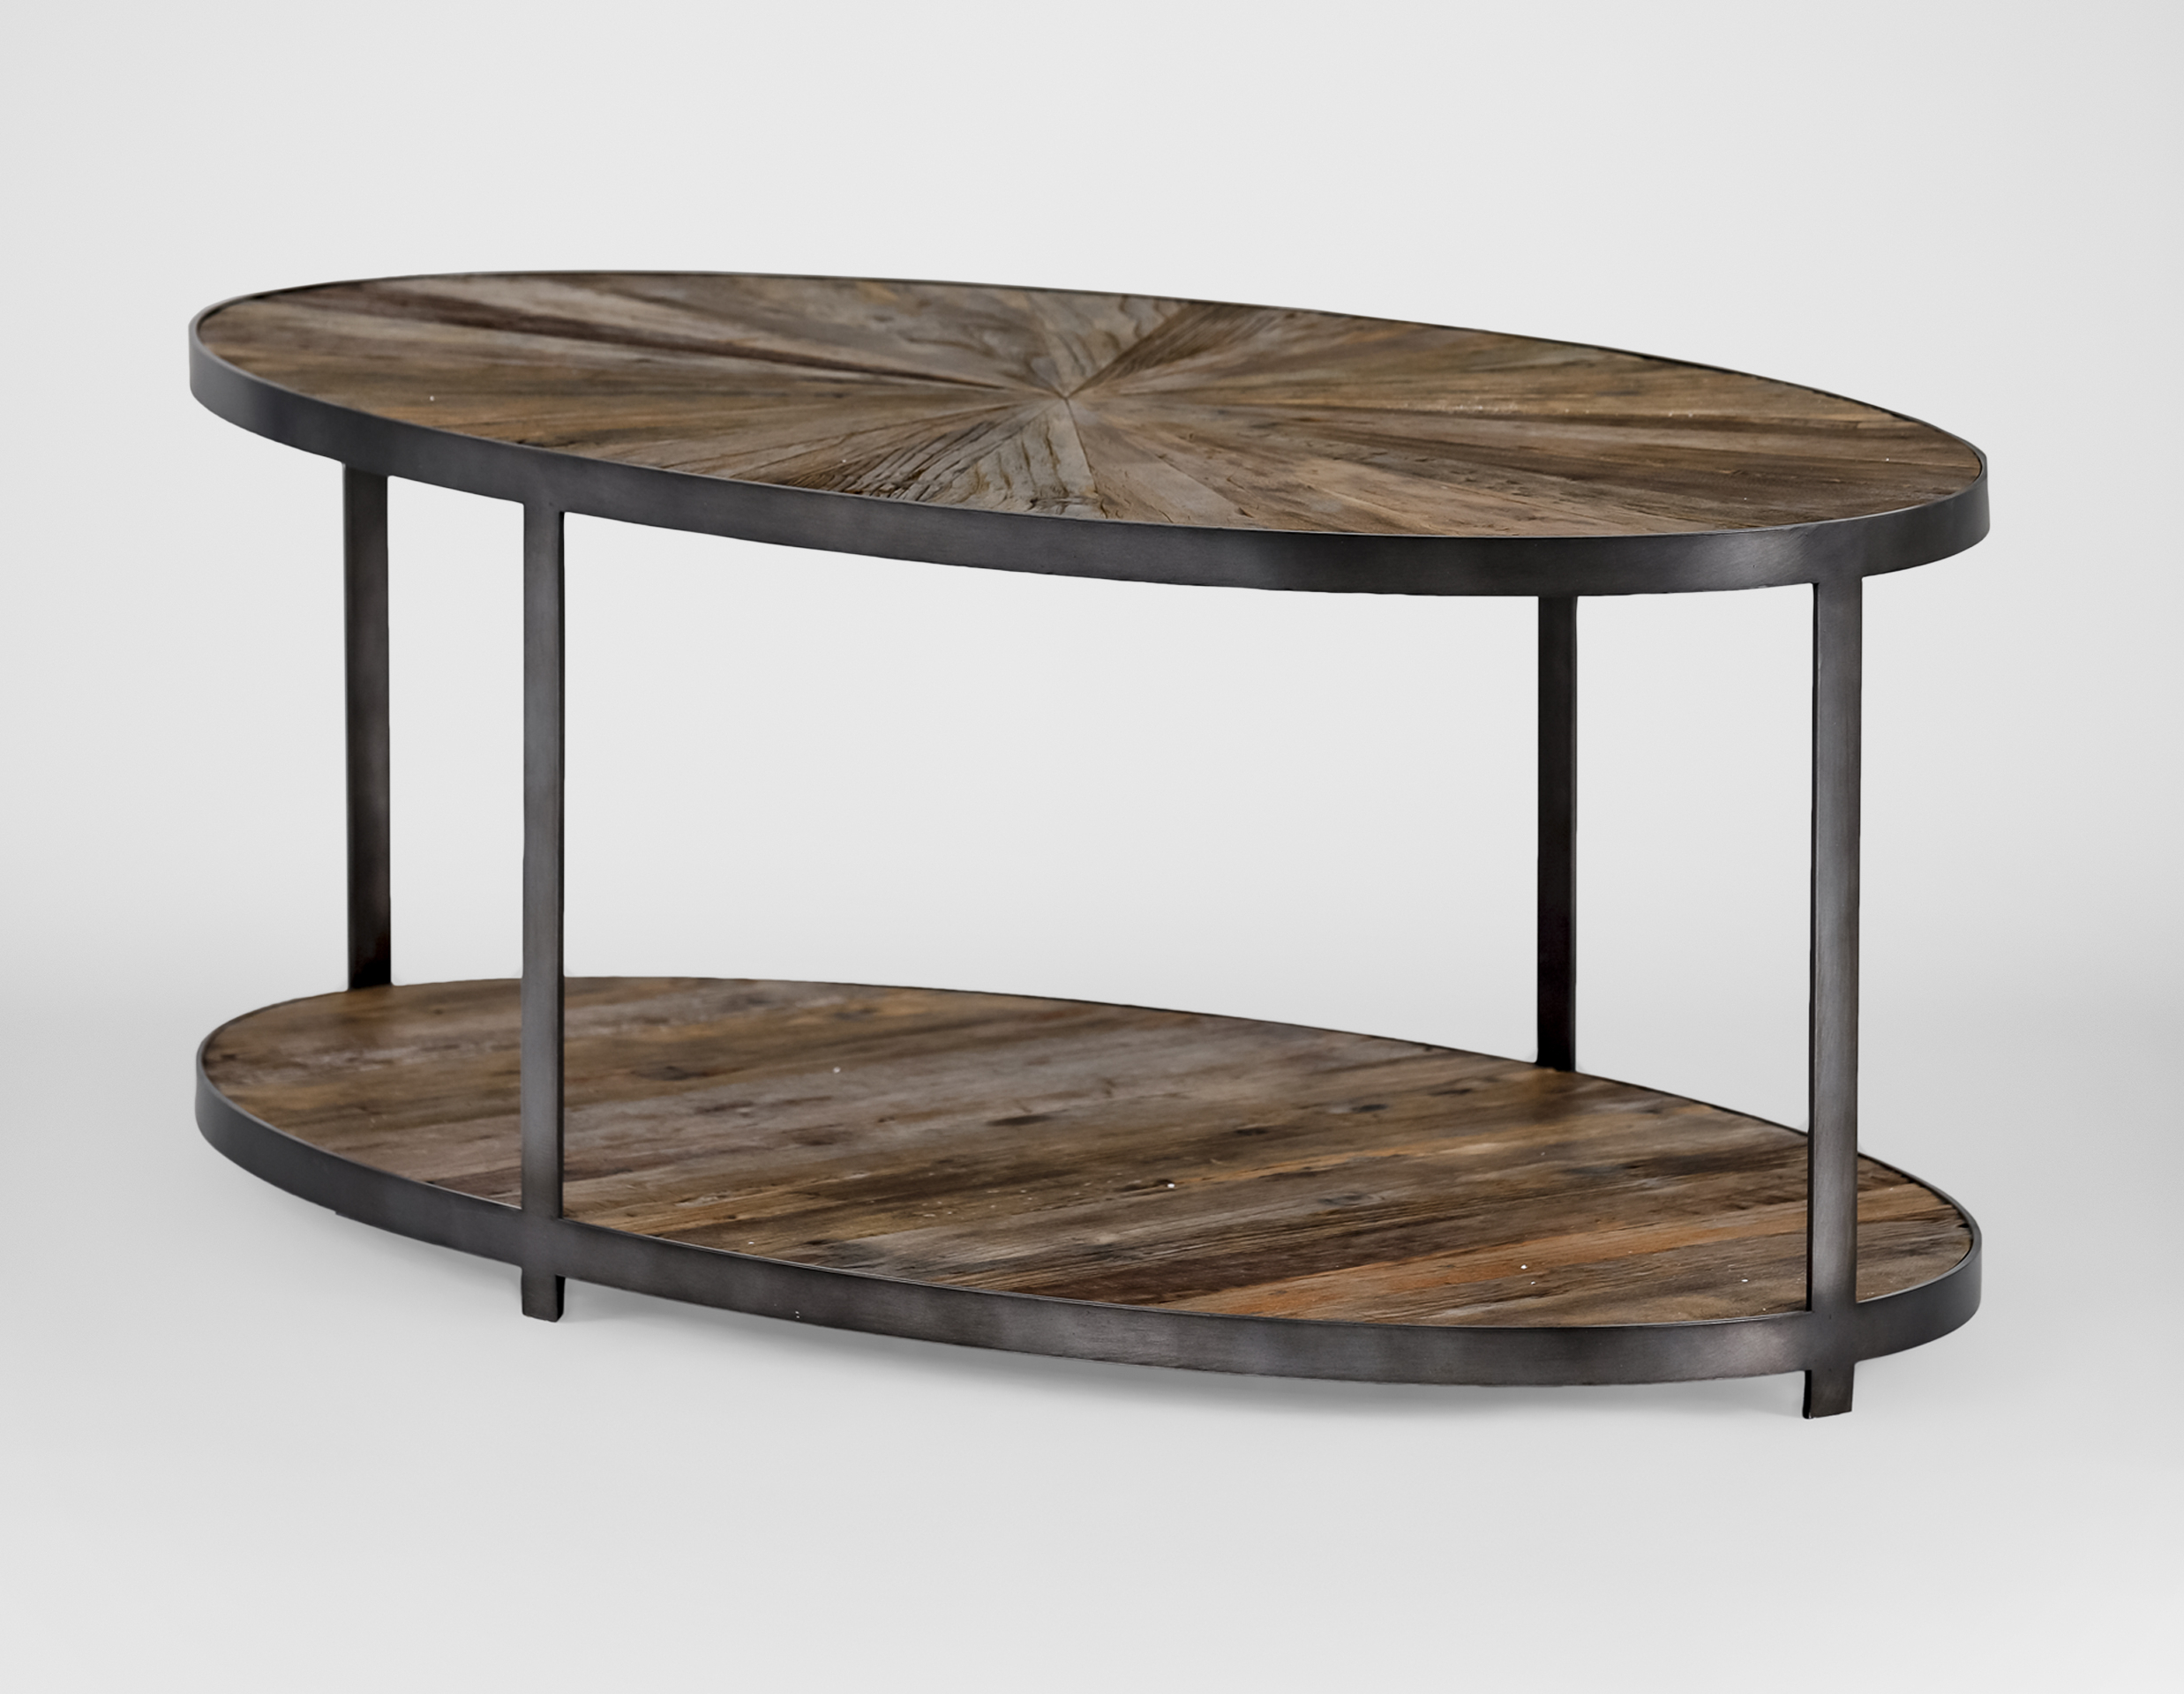 Ronald Coffee Table For Best And Newest Reclaimed Elm Iron Coffee Tables (View 18 of 20)